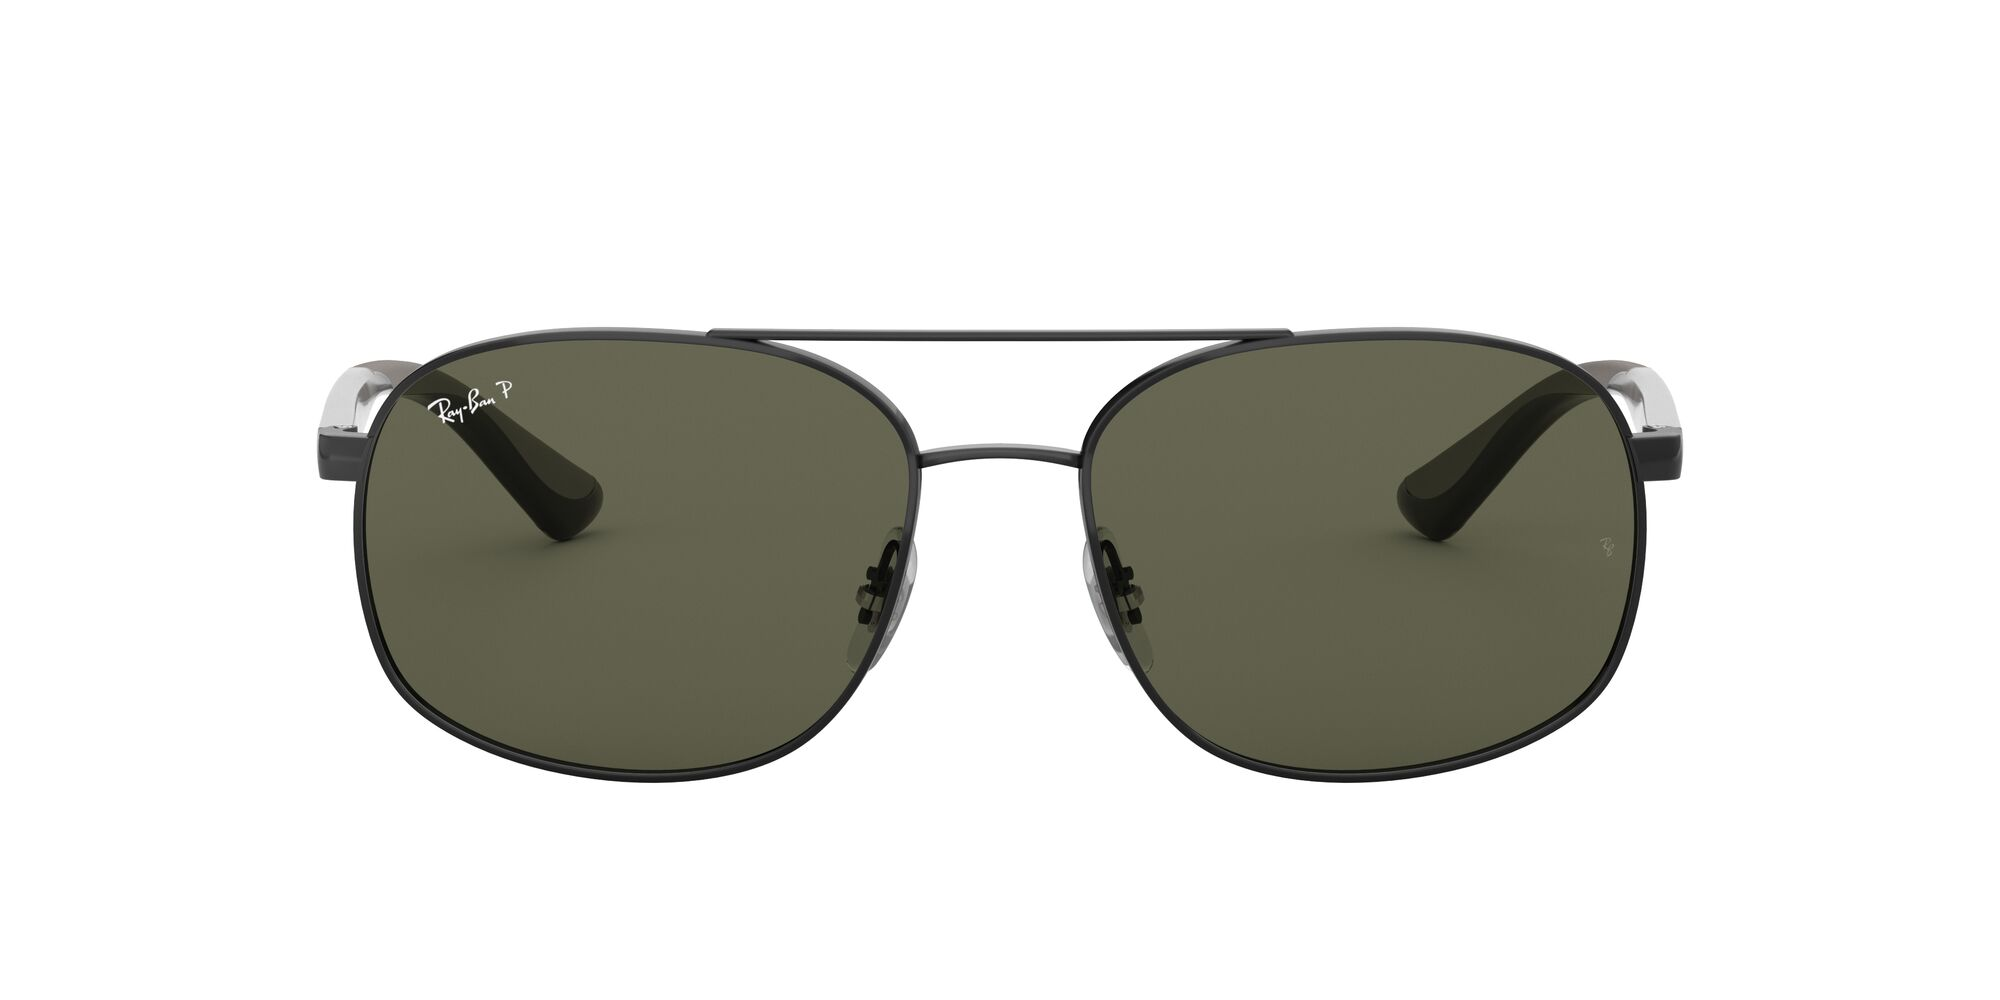 Front Ray-Ban Ray-Ban 0RB3593 002/9A 58/17 Zwart/Groen